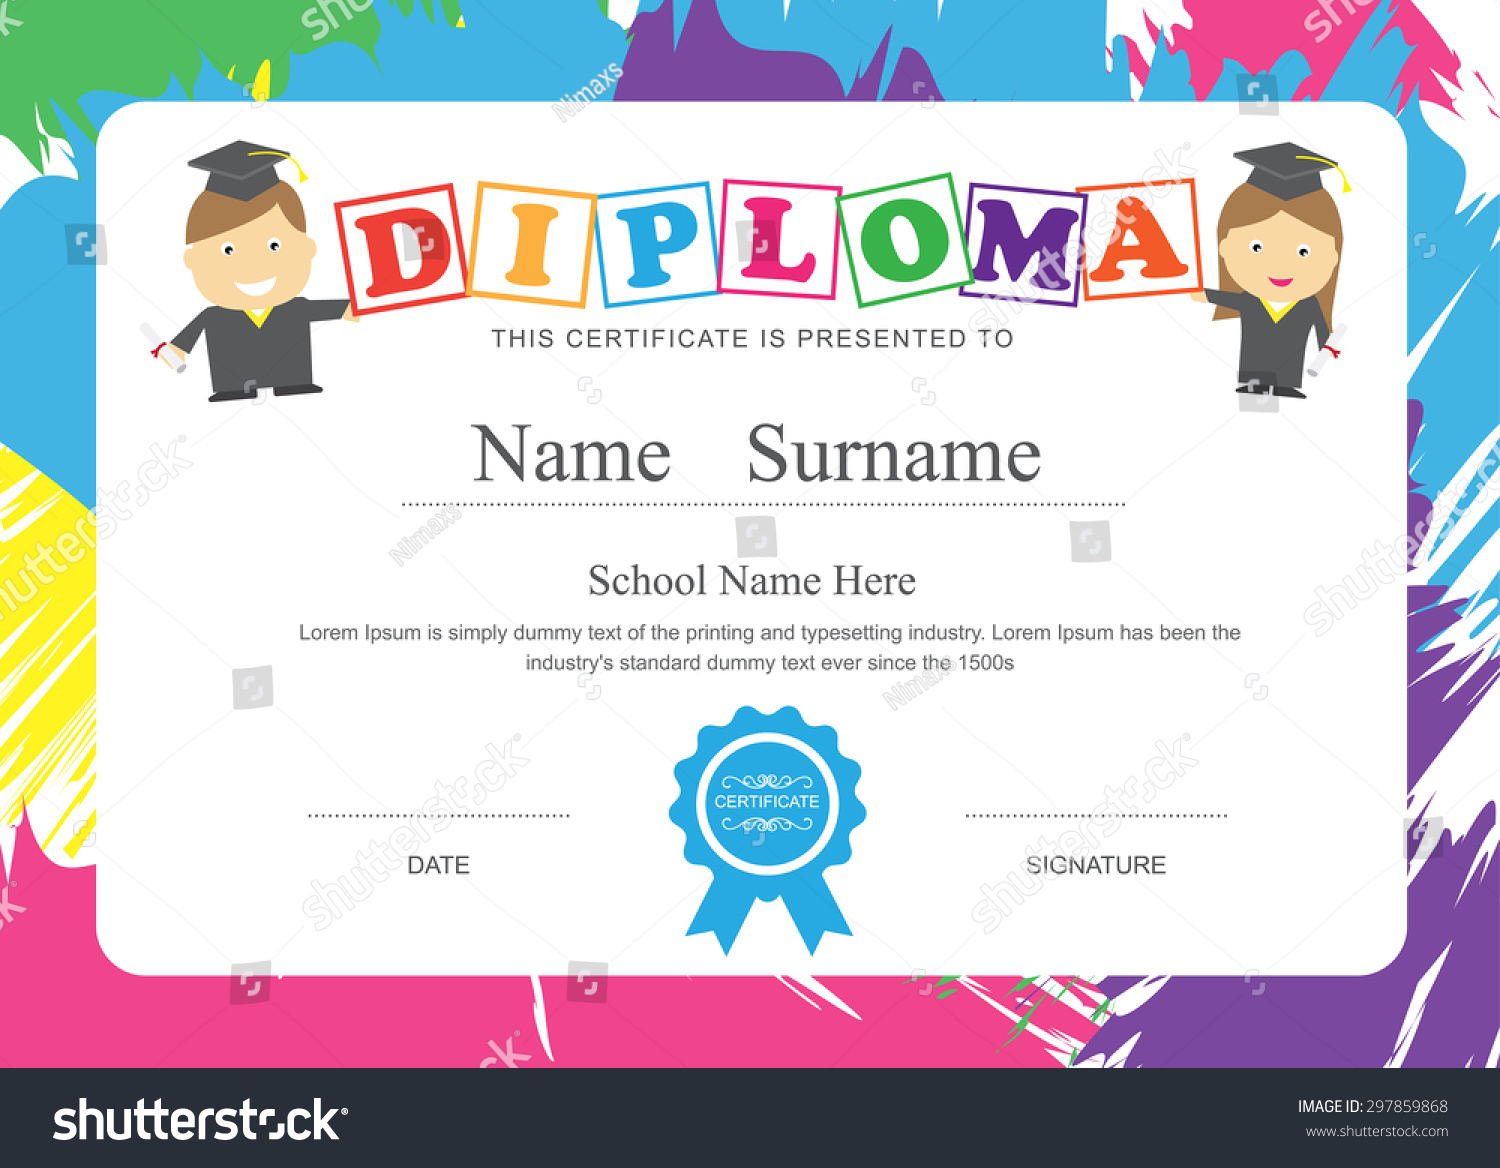 Kids diploma preschool certificate elementary school stock vector kids diploma preschool certificate elementary school design template background xflitez Images